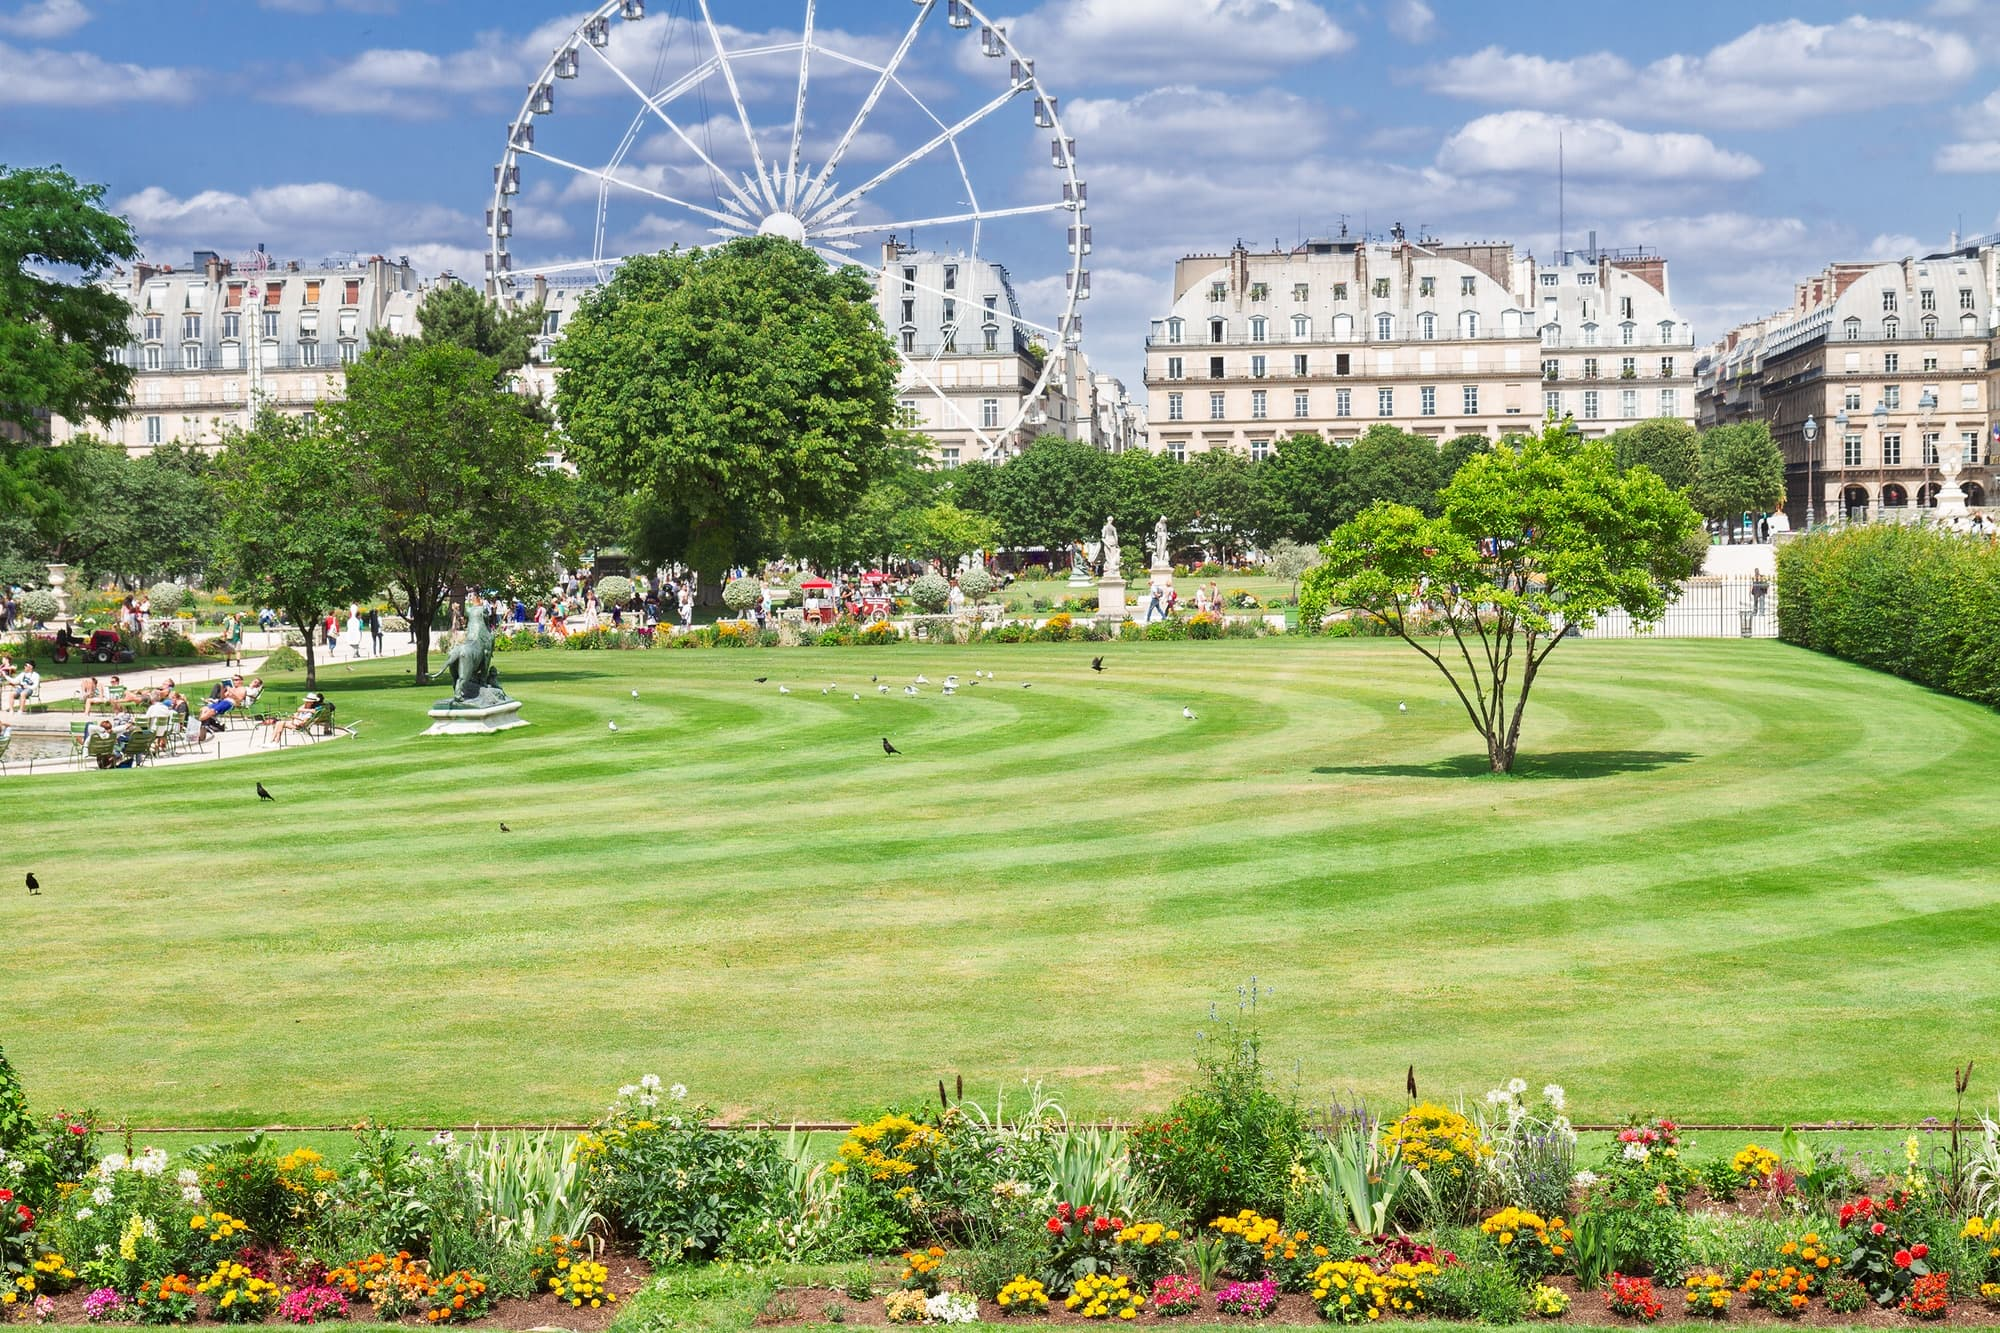 Jardin des Tuileries with the Roue de Paris Ferris wheel in the distance